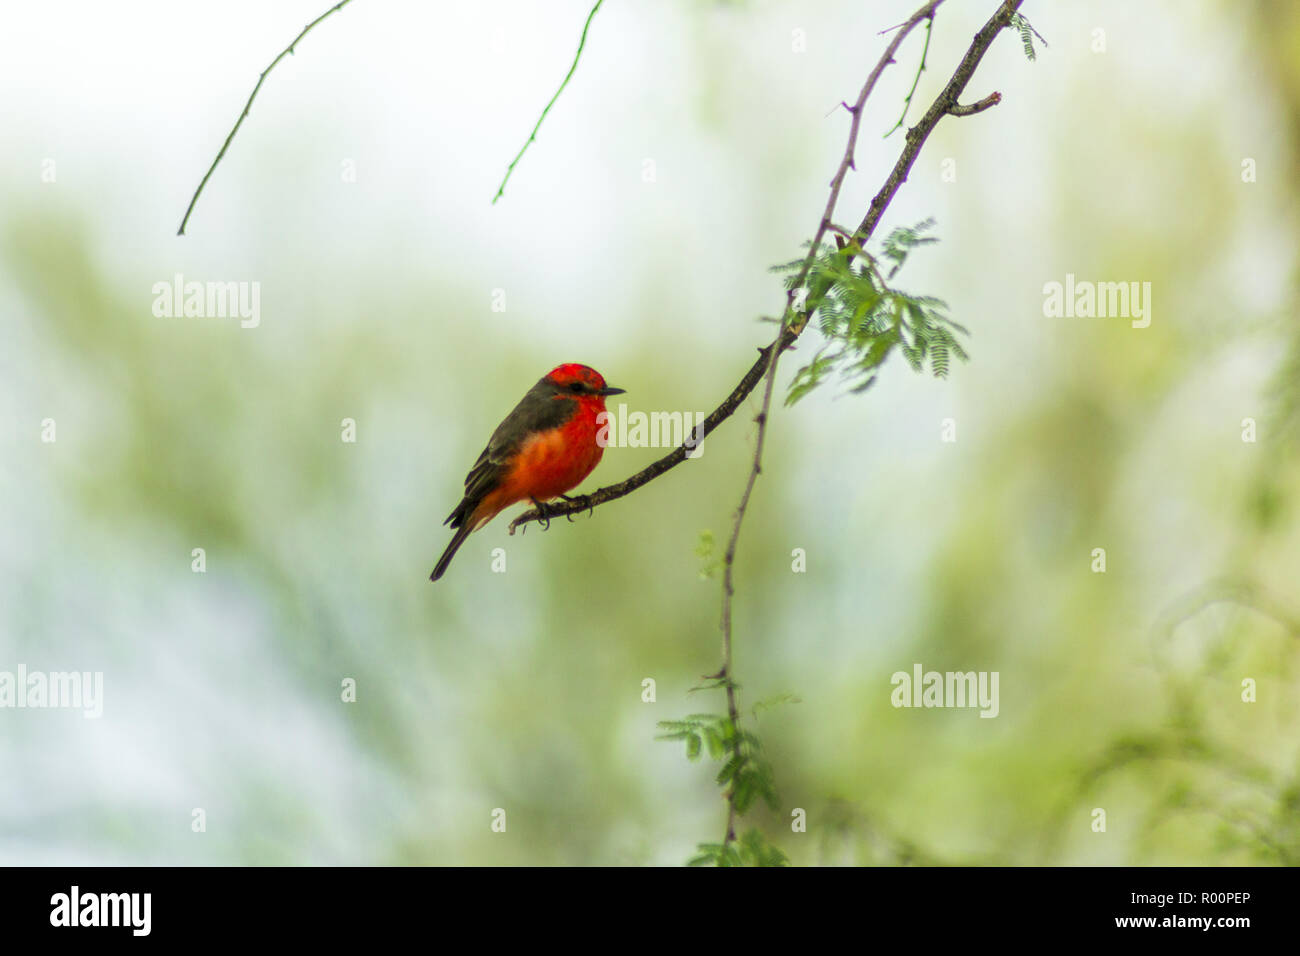 Black and red bird perching on a tree branch at Big Bend National Park. - Stock Image